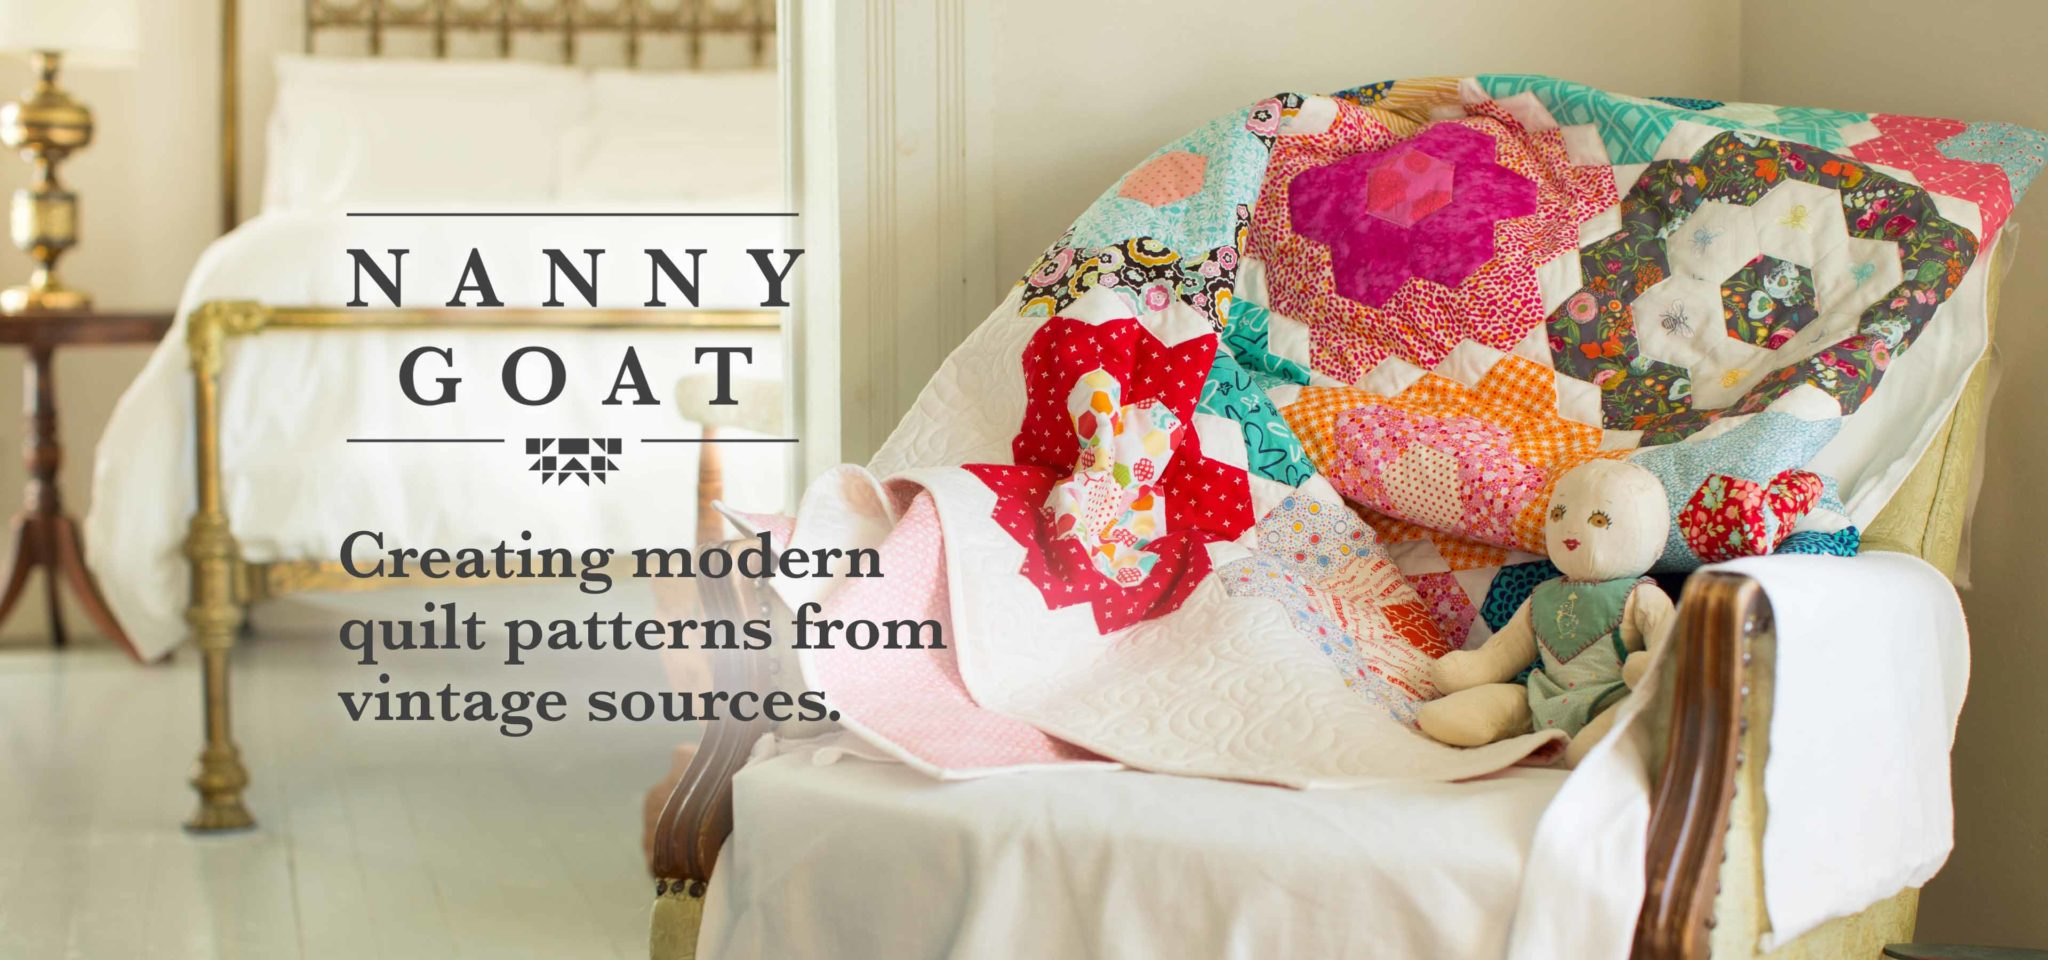 nanny goat: Creating modern quilt patterns from vintage sources